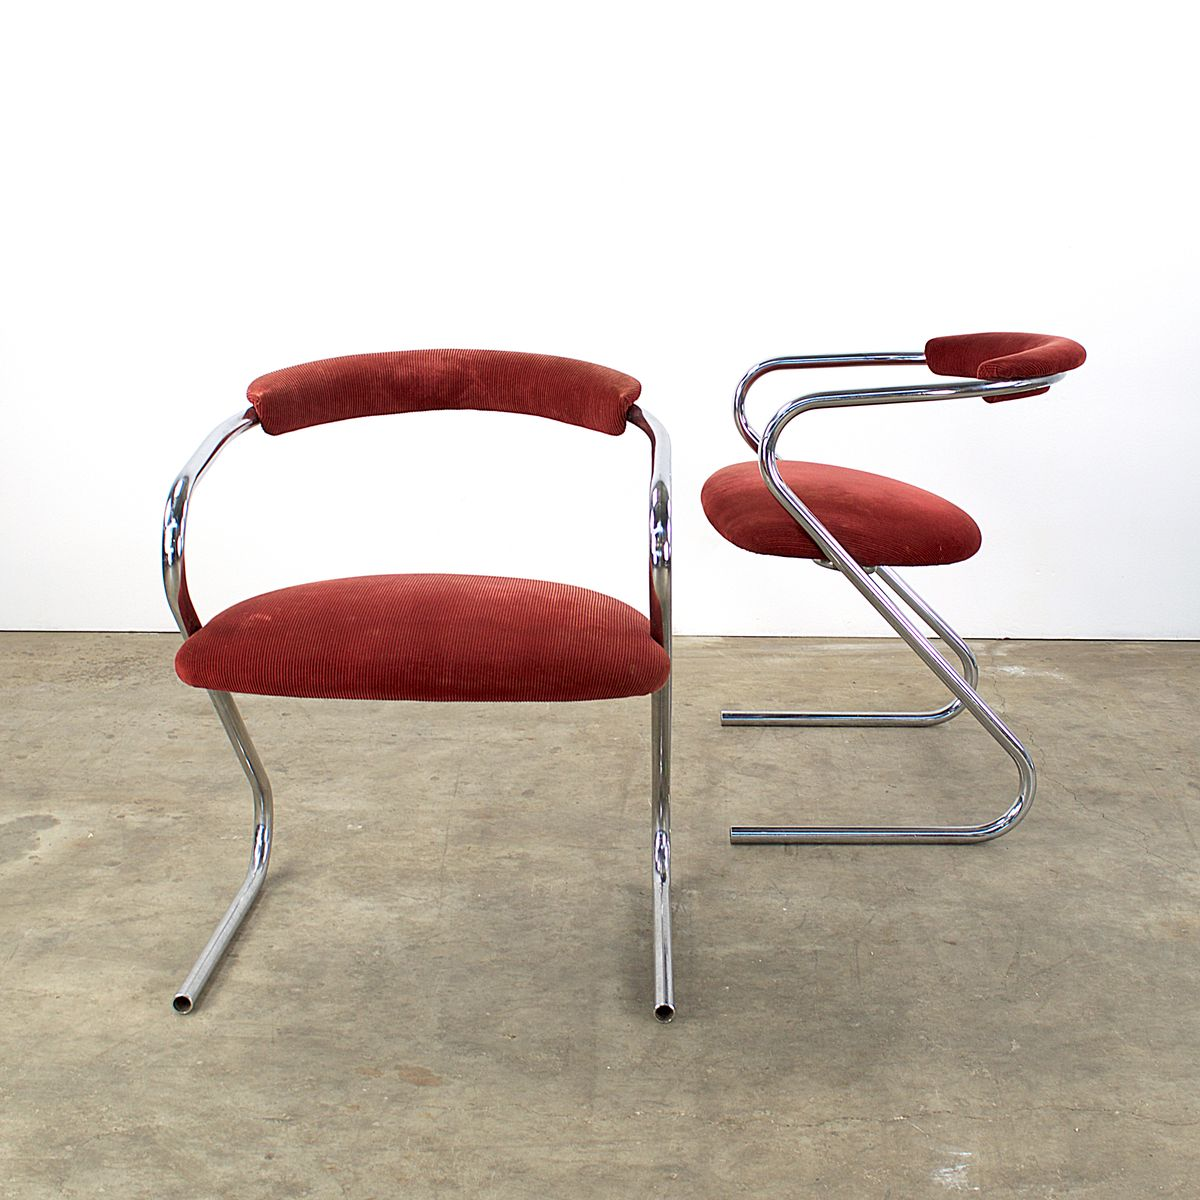 Danish Z Frame Armchairs from Lammhults, 1970s, Set of 2 for sale at Pamono